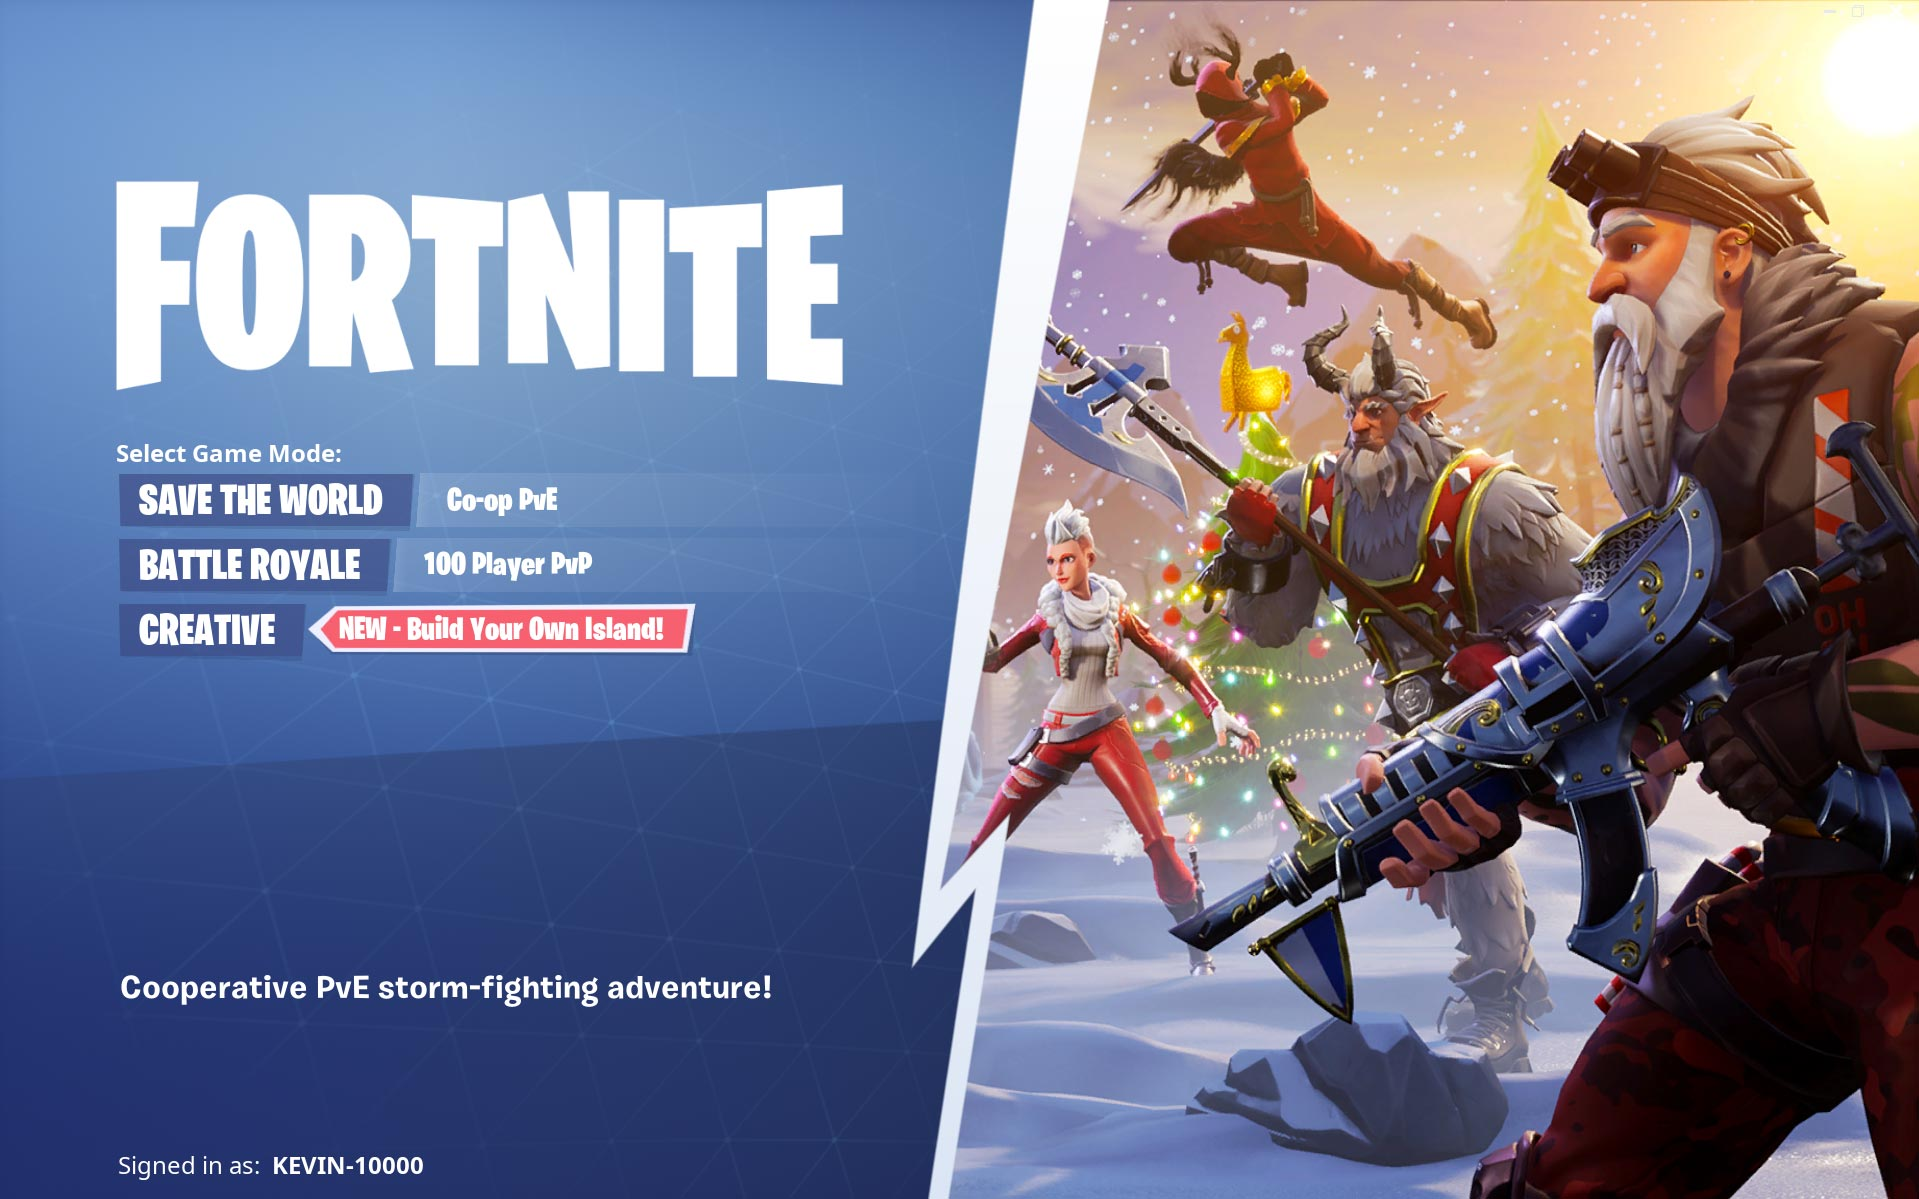 Fortnite choose game mode Screenshot